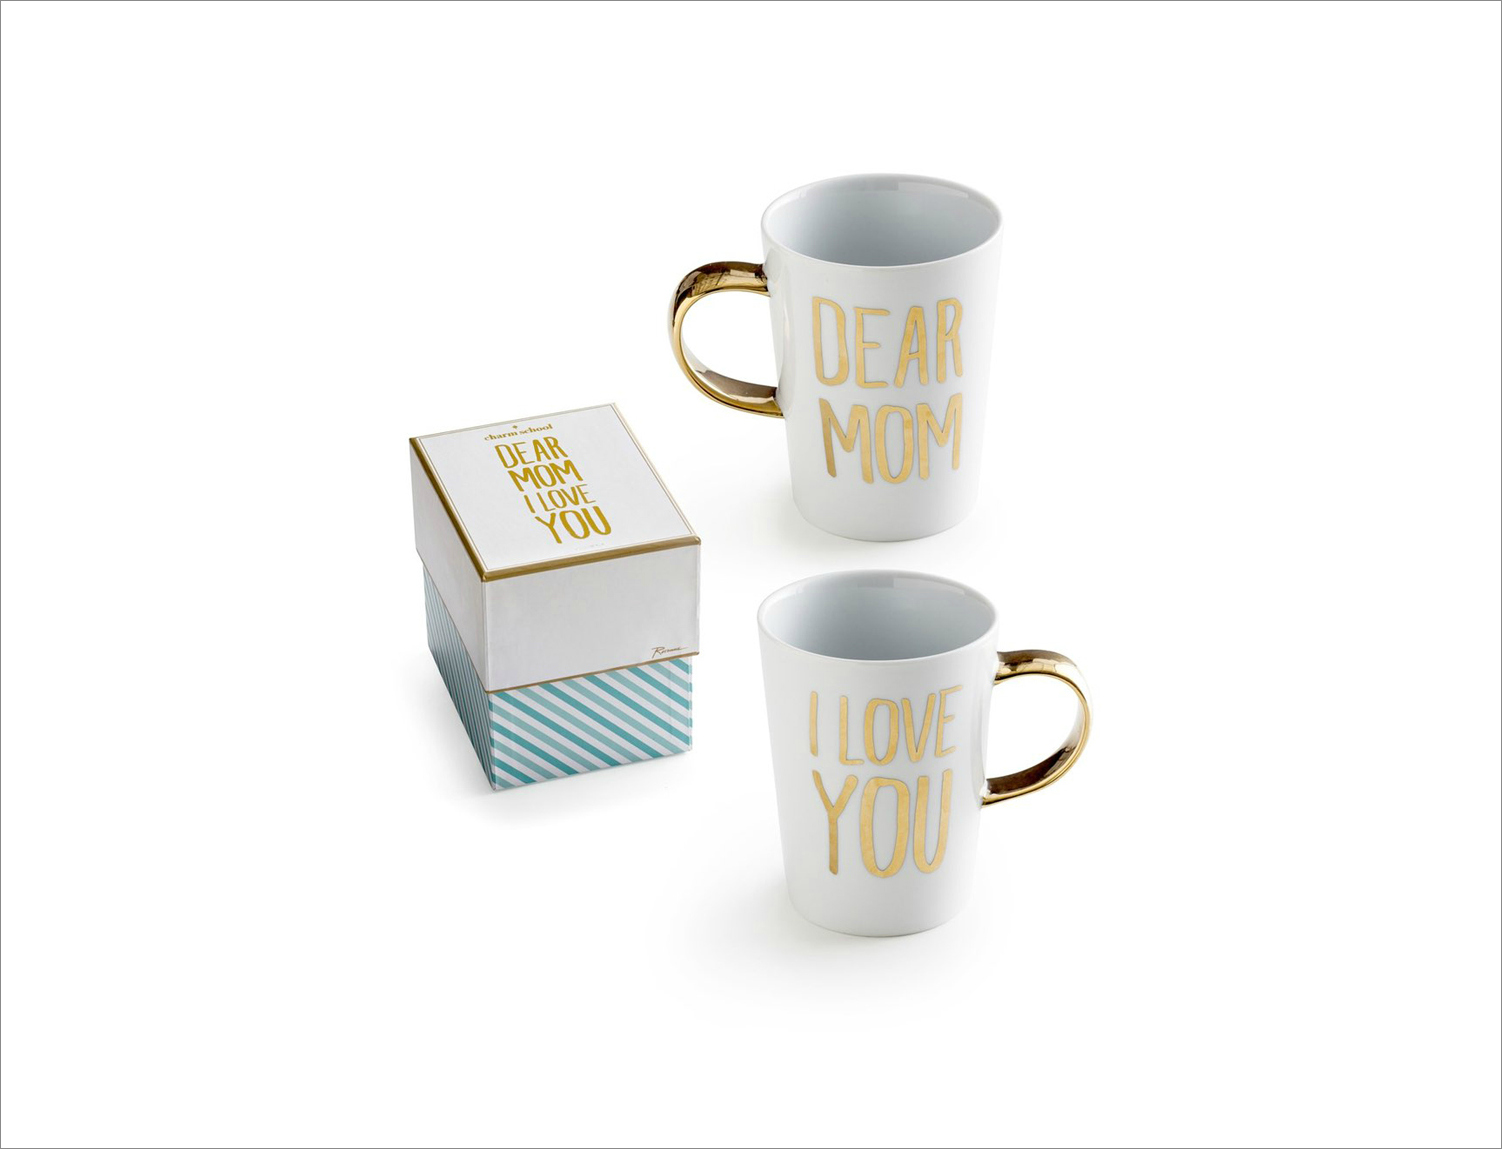 Charm Mor Law Who Has Everything Gifts Dear Mom I Love You Porcelain Coffee Mug By Rosanna From Nordstrom G Gift Gifts Law Uk Mom Your Future On Gifts Mor gifts Gifts For Mother In Law